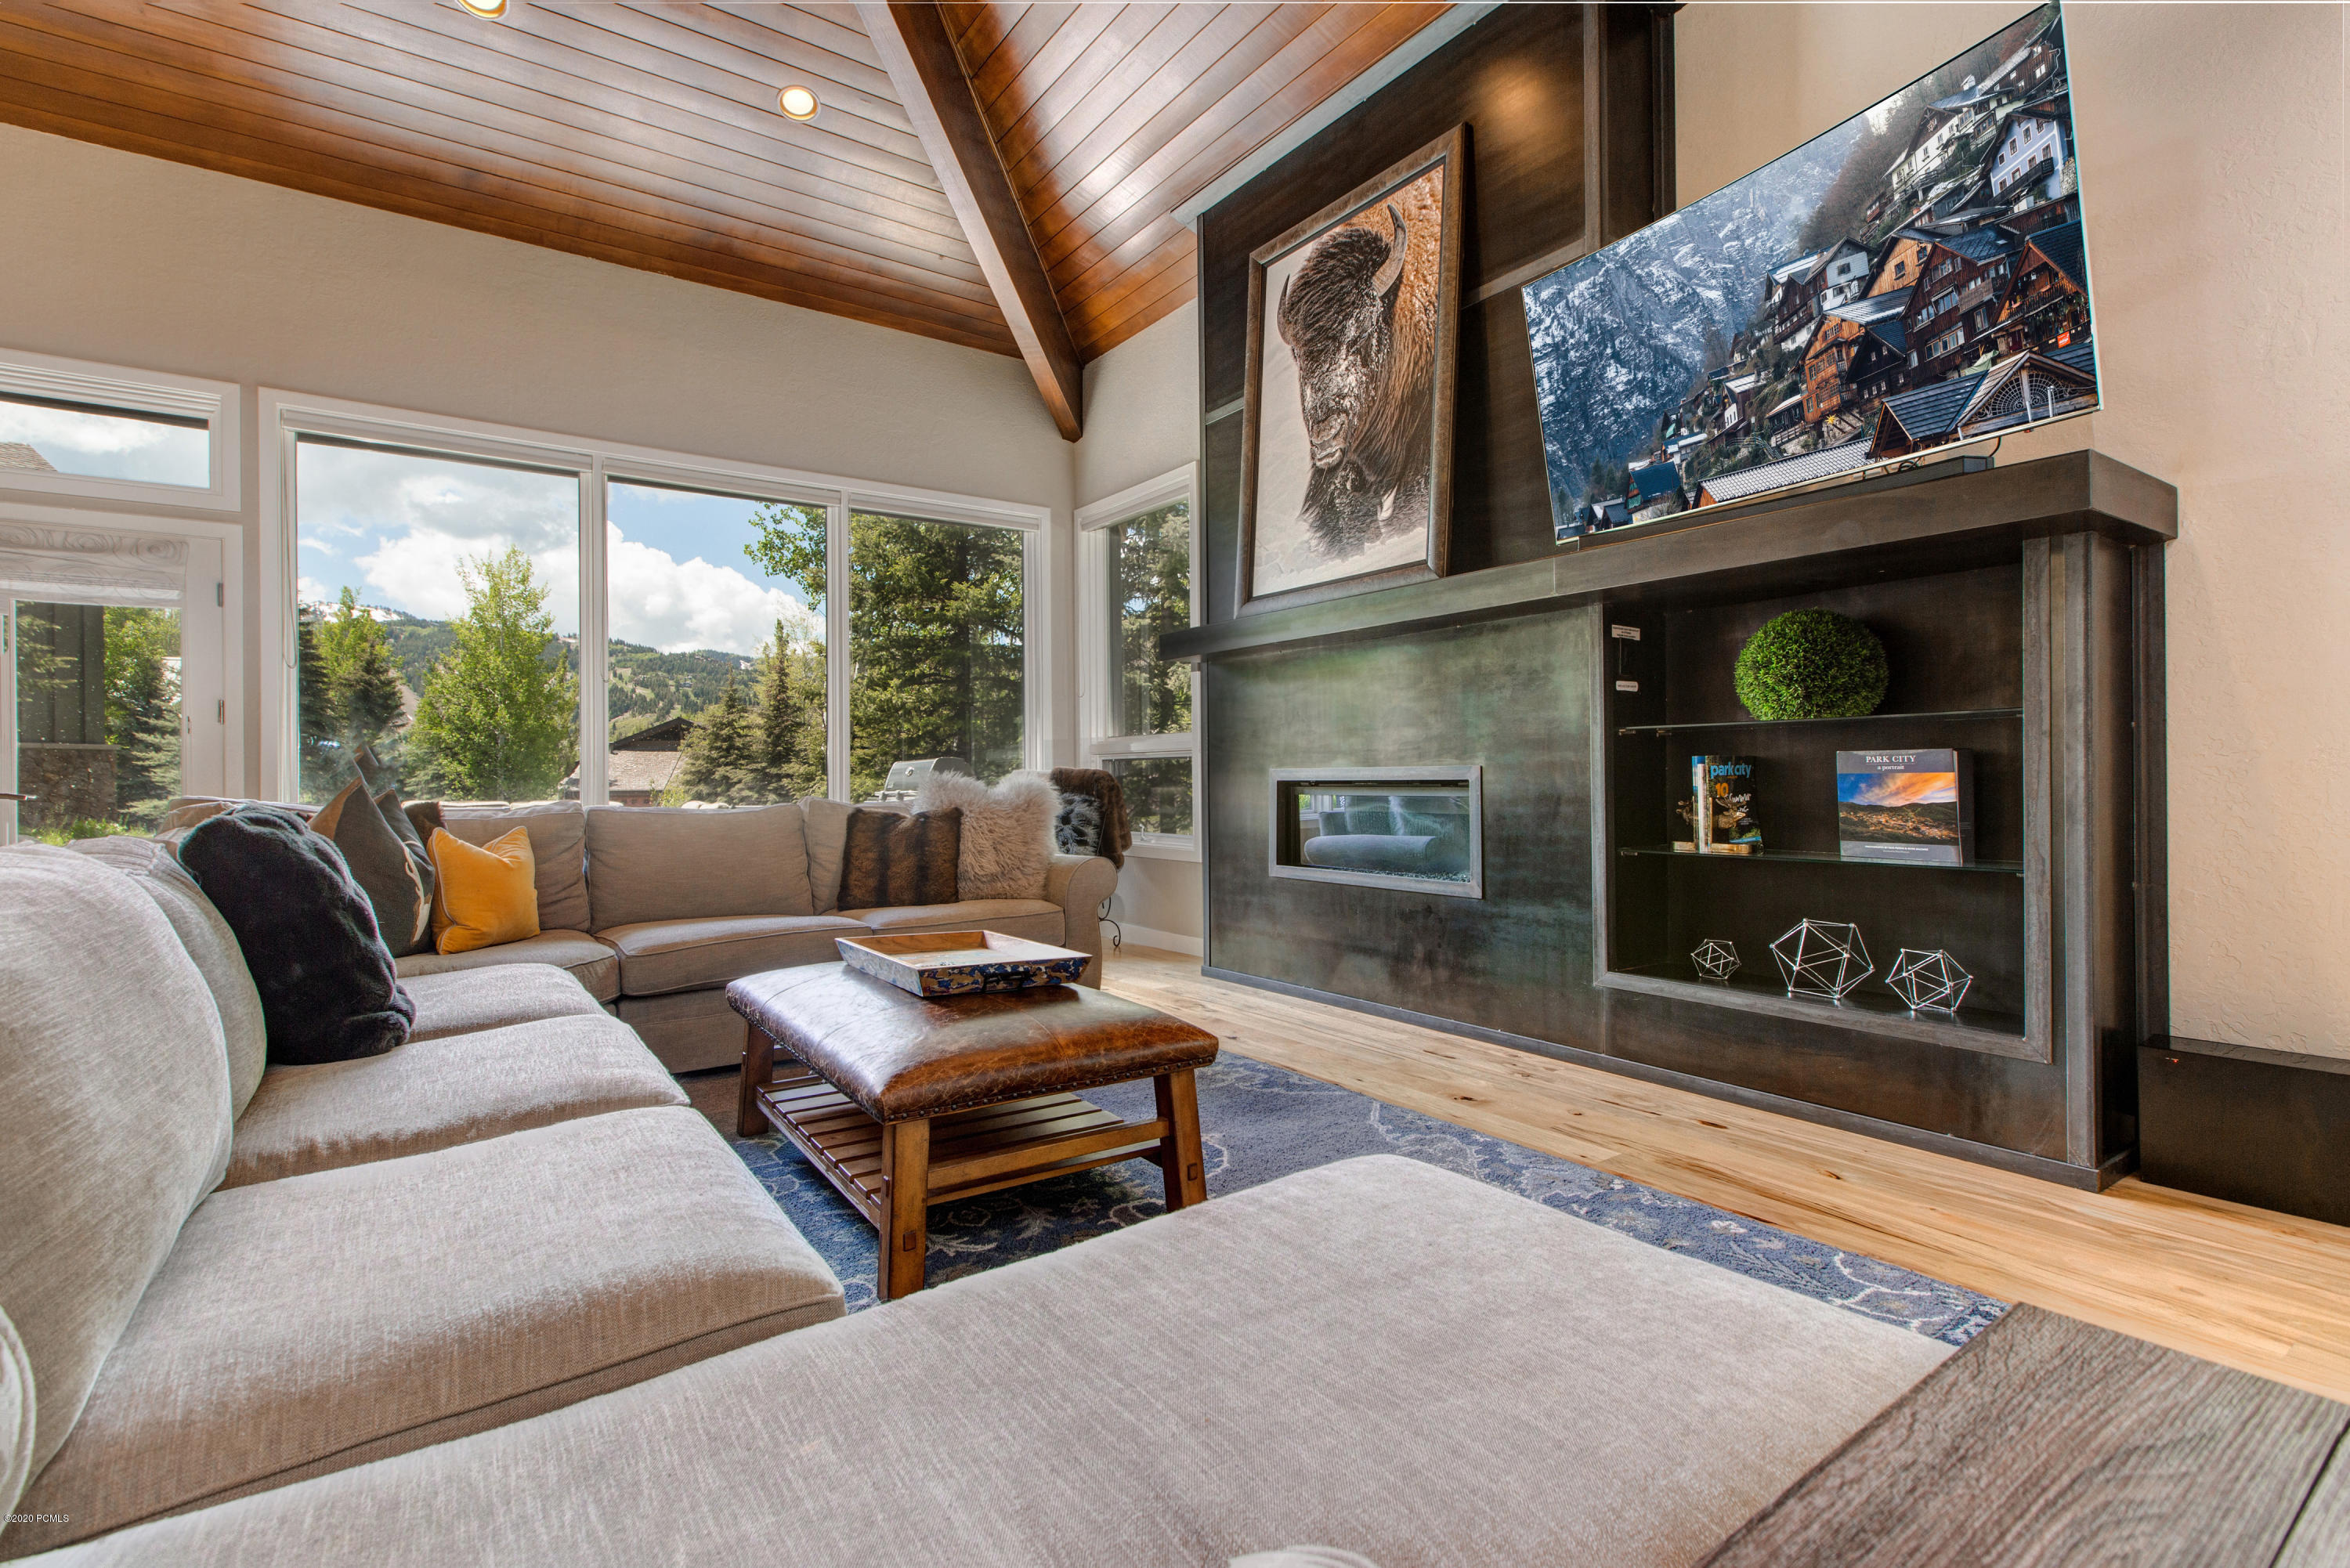 2675 Daystar Circle, Park City, Utah 84060, 3 Bedrooms Bedrooms, ,4 BathroomsBathrooms,Single Family,For Sale,Daystar,20190109112430415765000000